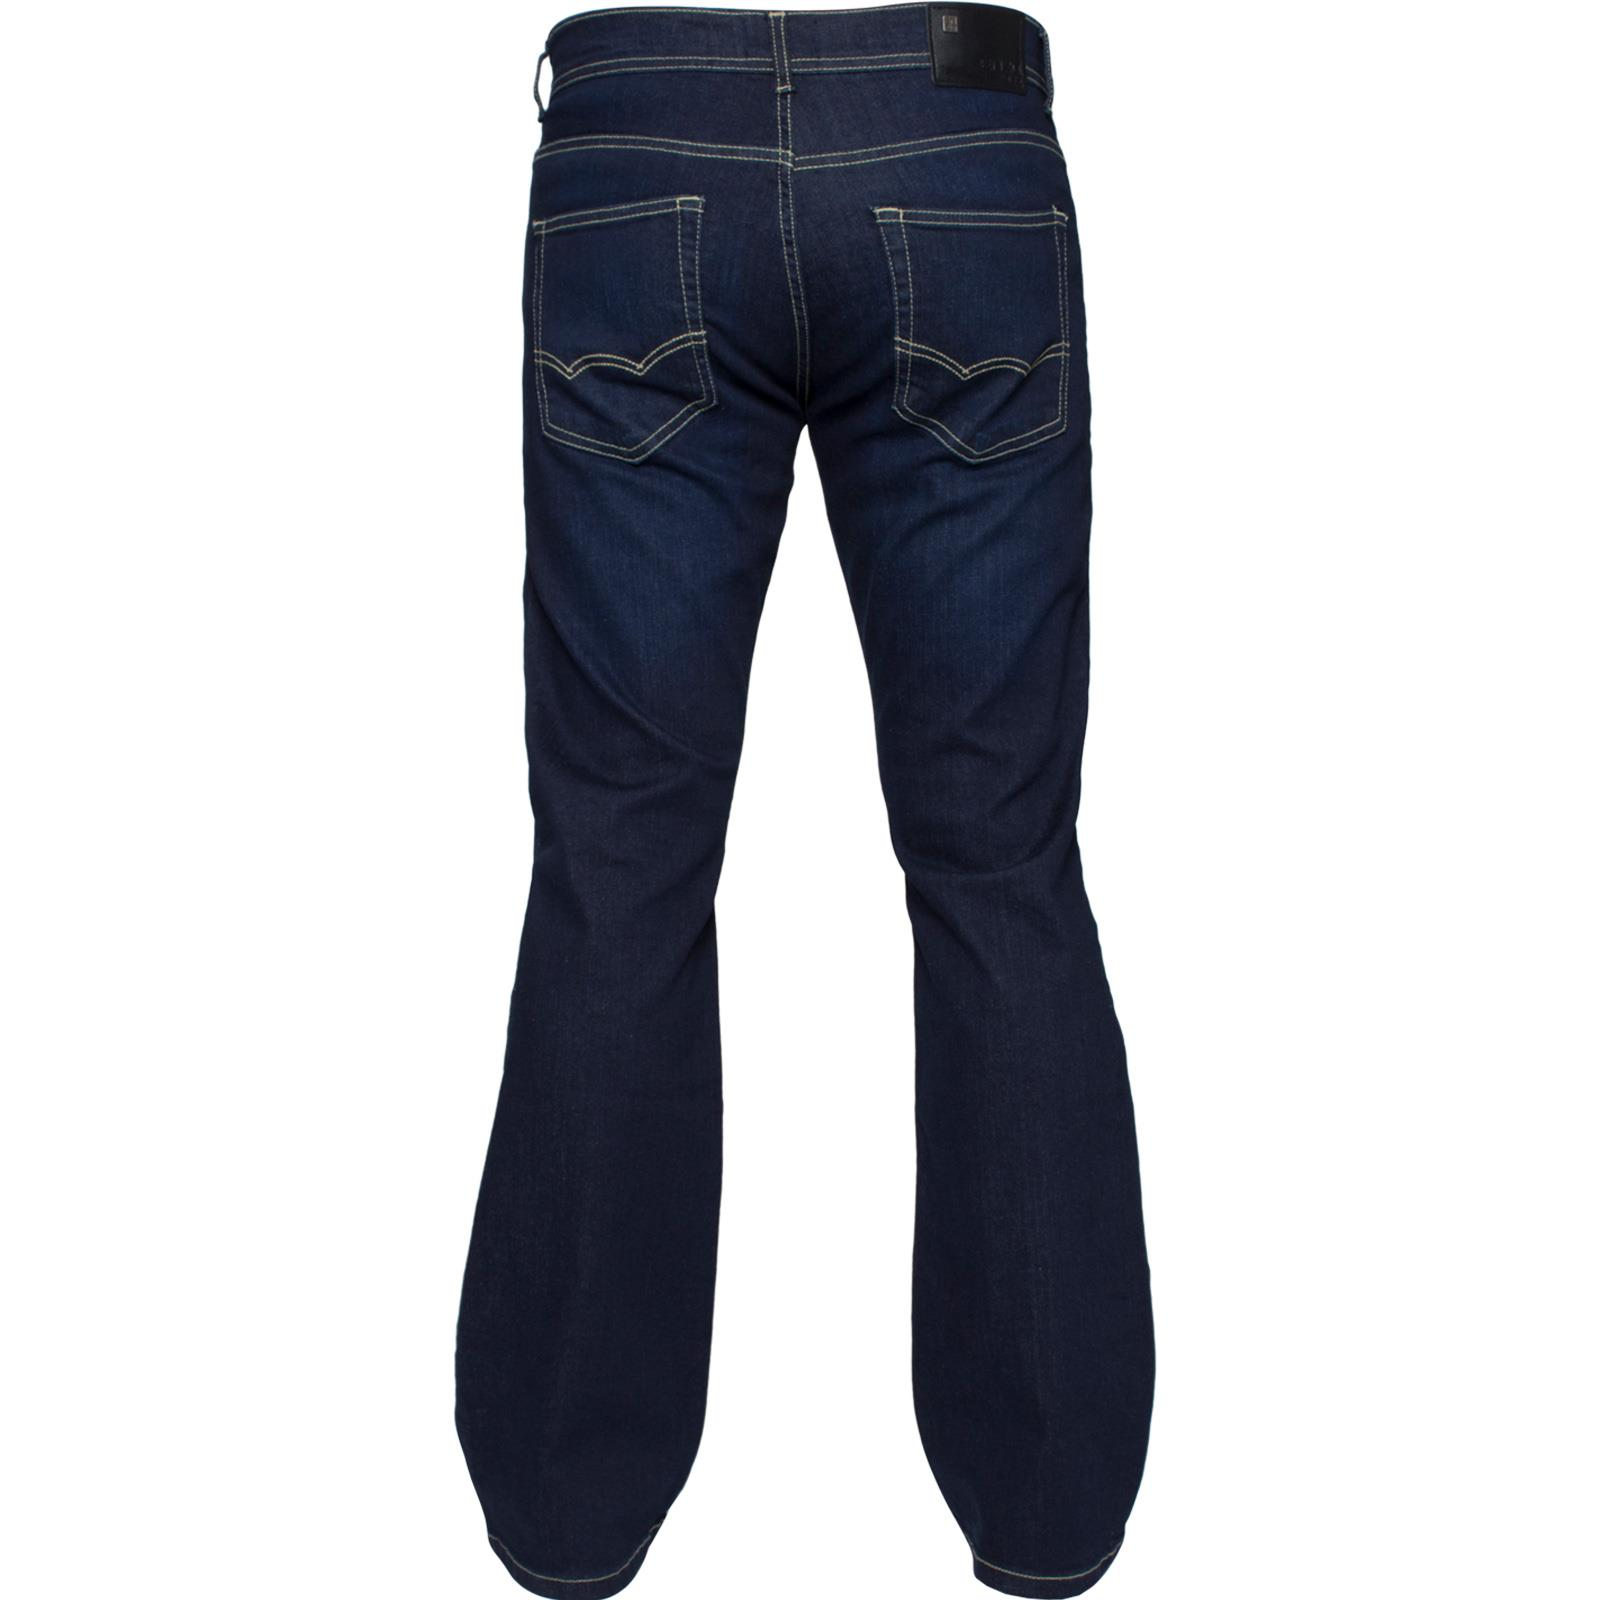 Enzo-Mens-Jeans-Big-Tall-Leg-King-Size-Denim-Pants-Chino-Trousers-Waist-44-034-60-034 miniature 96